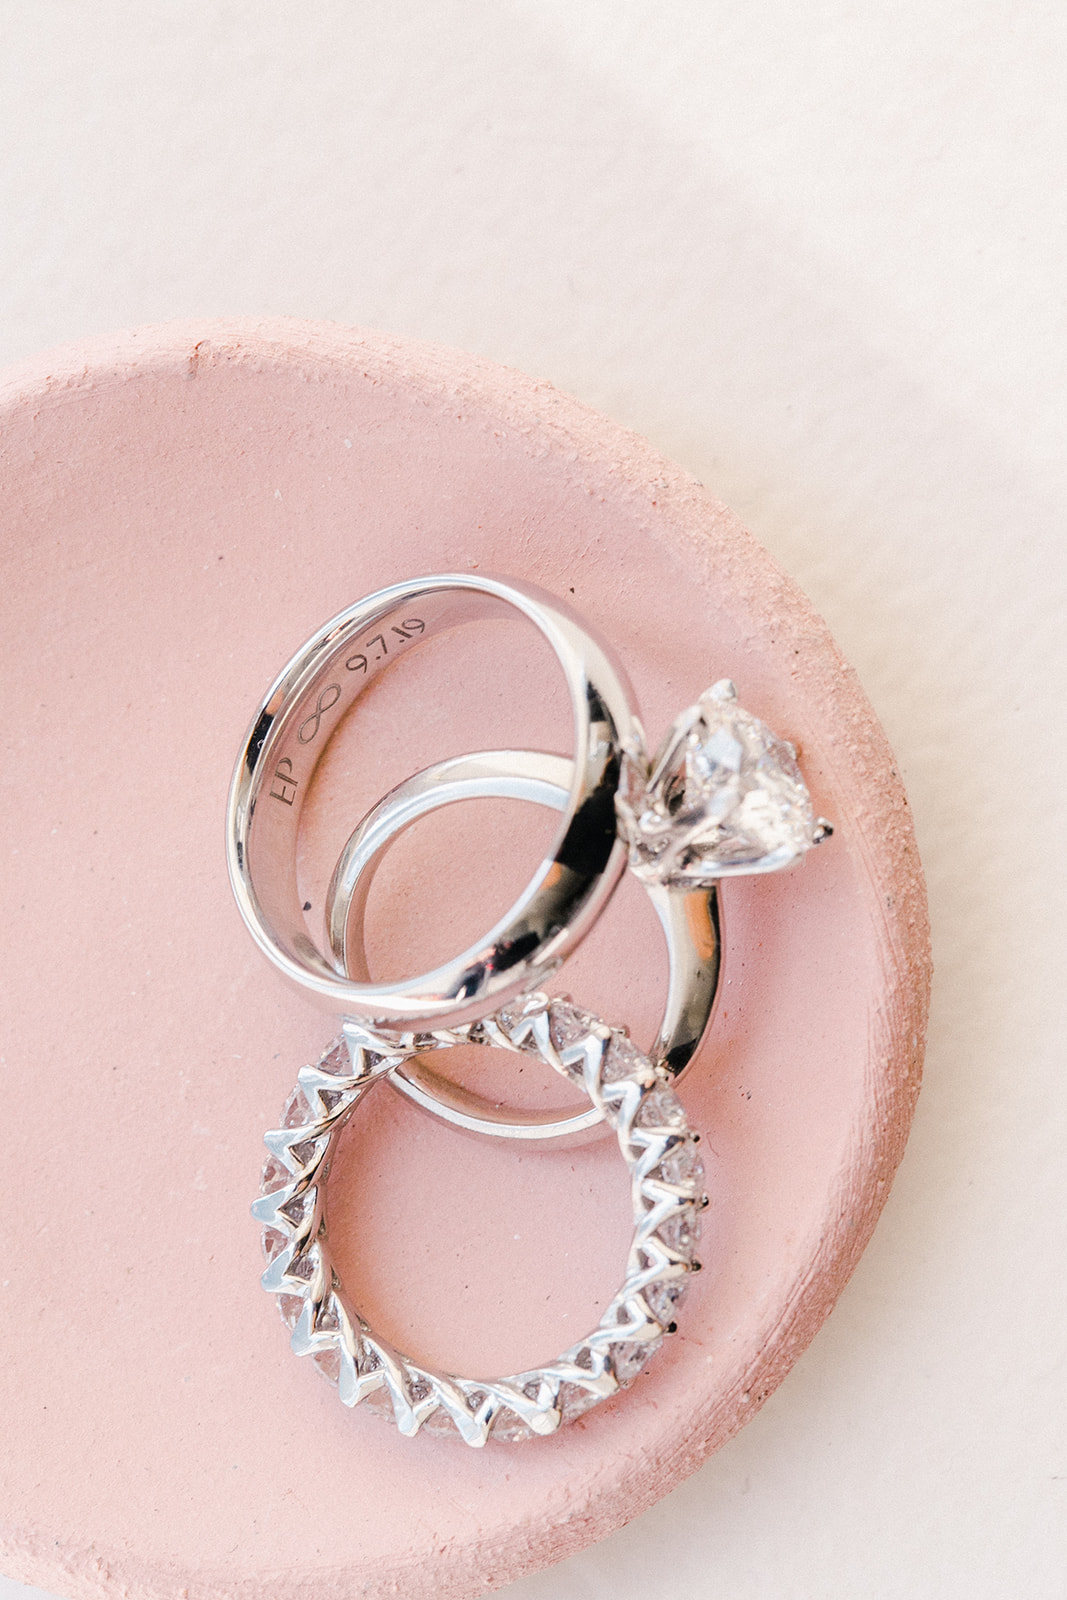 Close up of wedding rings/bands in pink dish